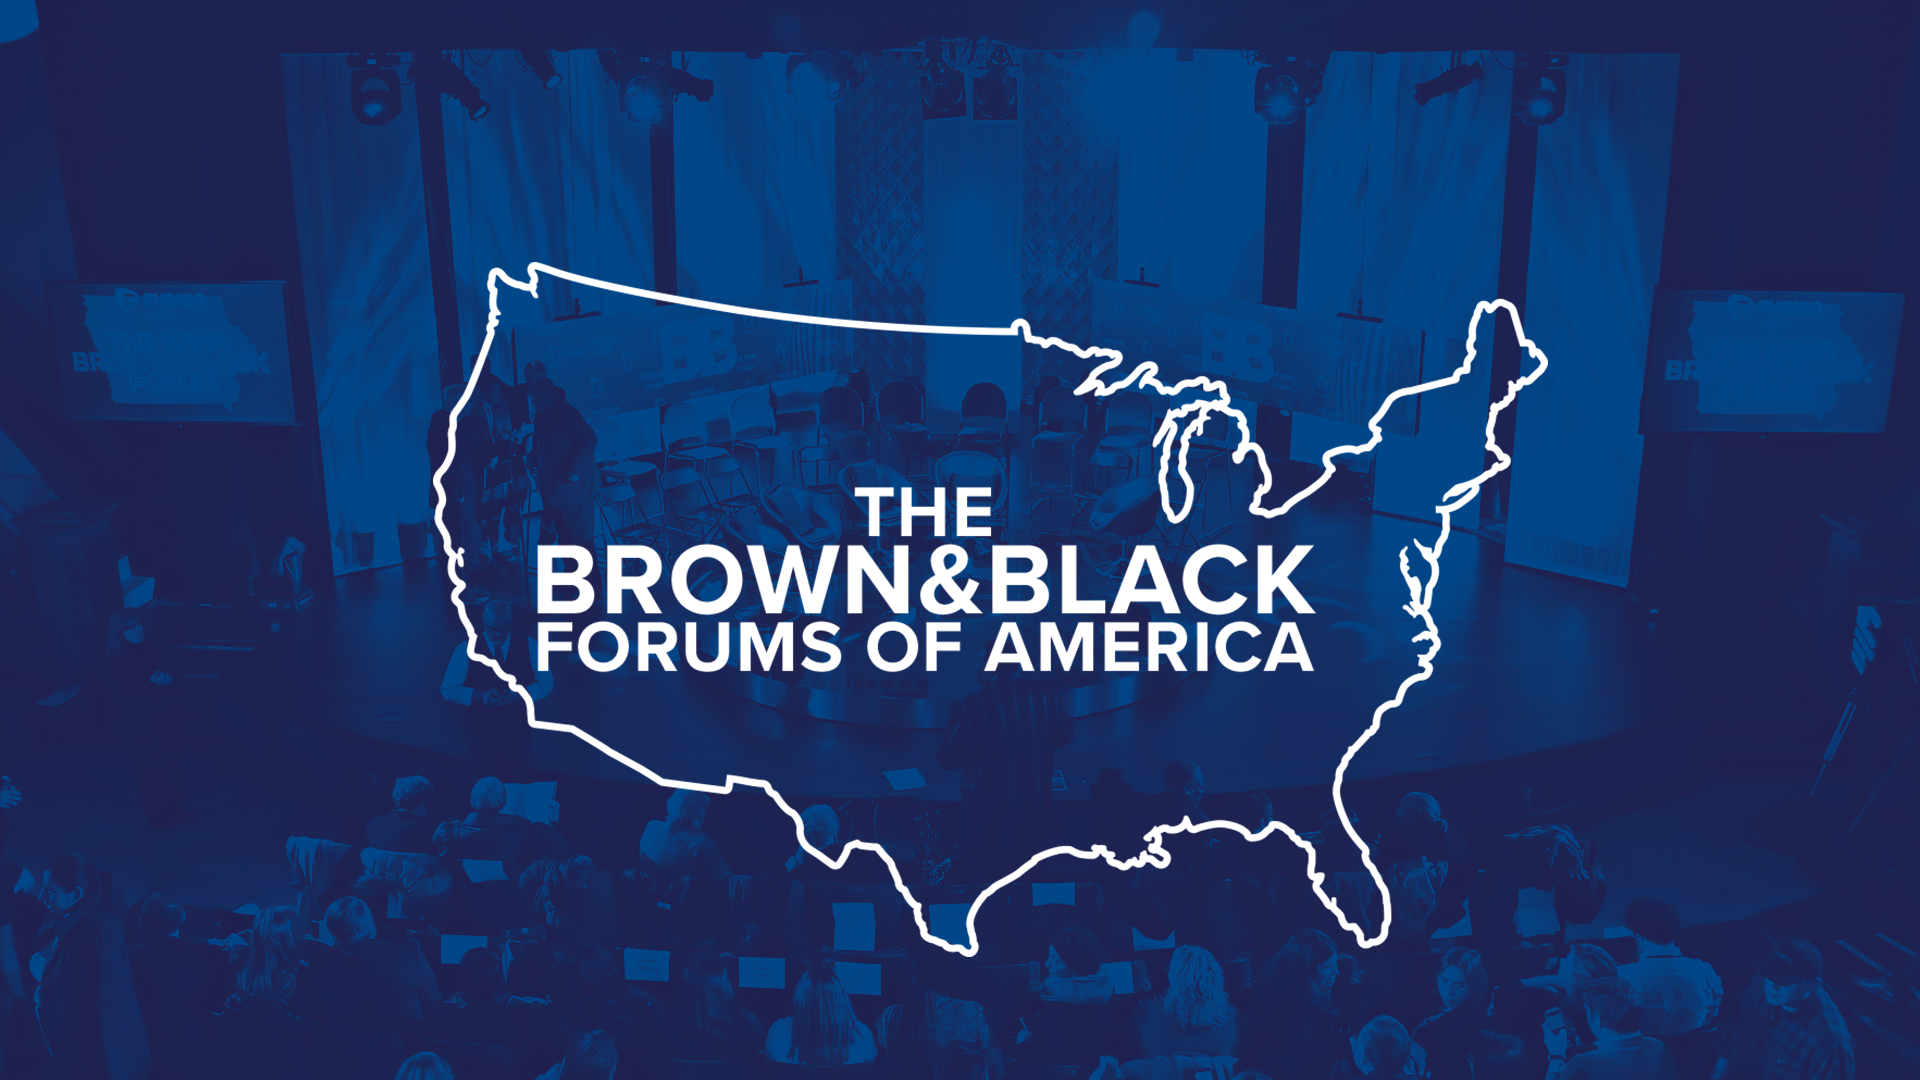 BlackandBrownForum_1920x1080.png